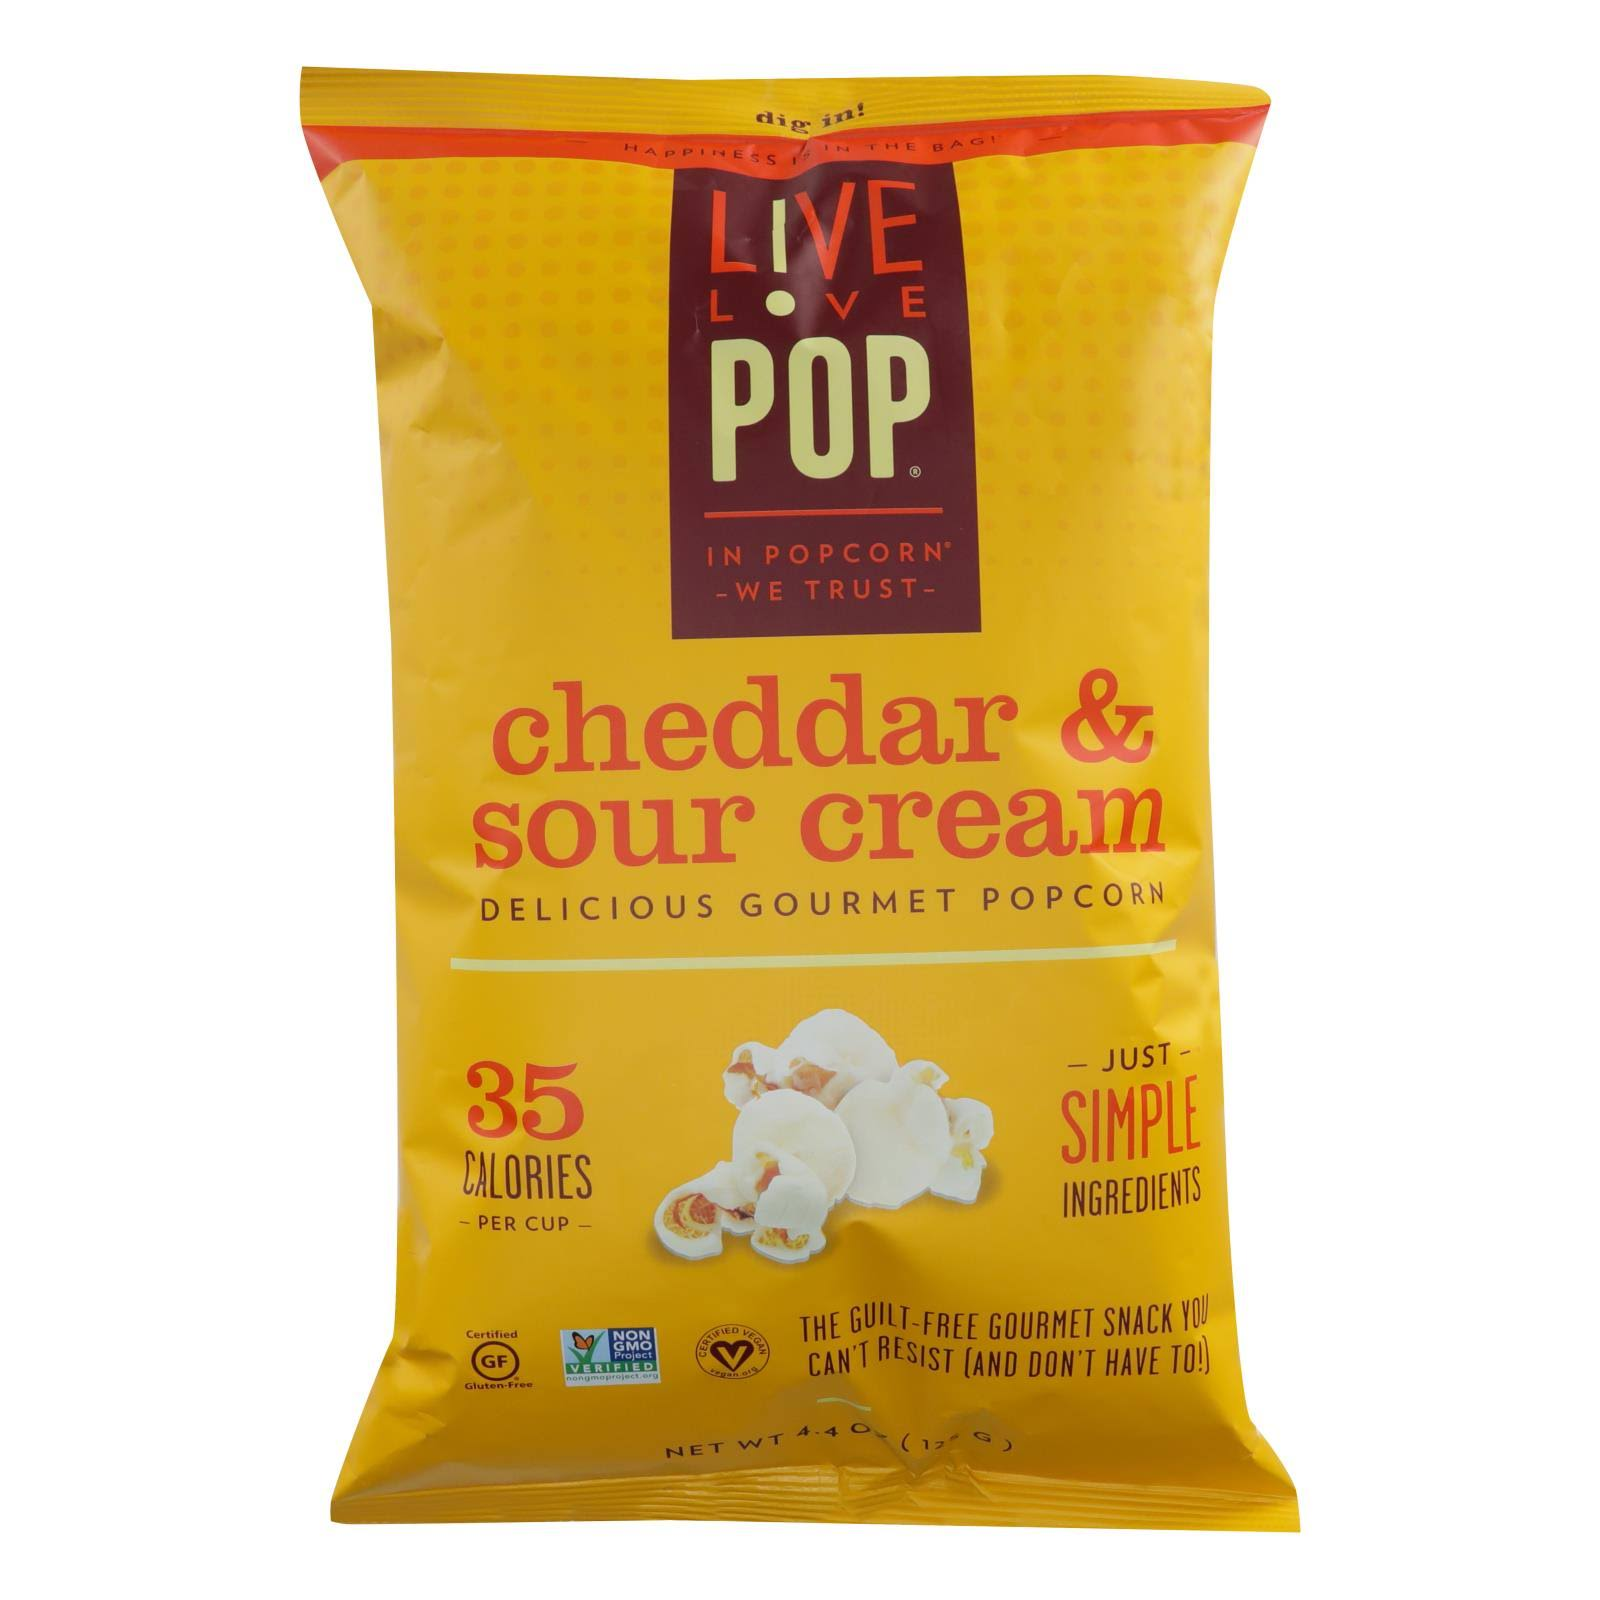 Live Love Pop Popcorn, Gourmet, Cheddar & Sour Cream - 4.4 oz